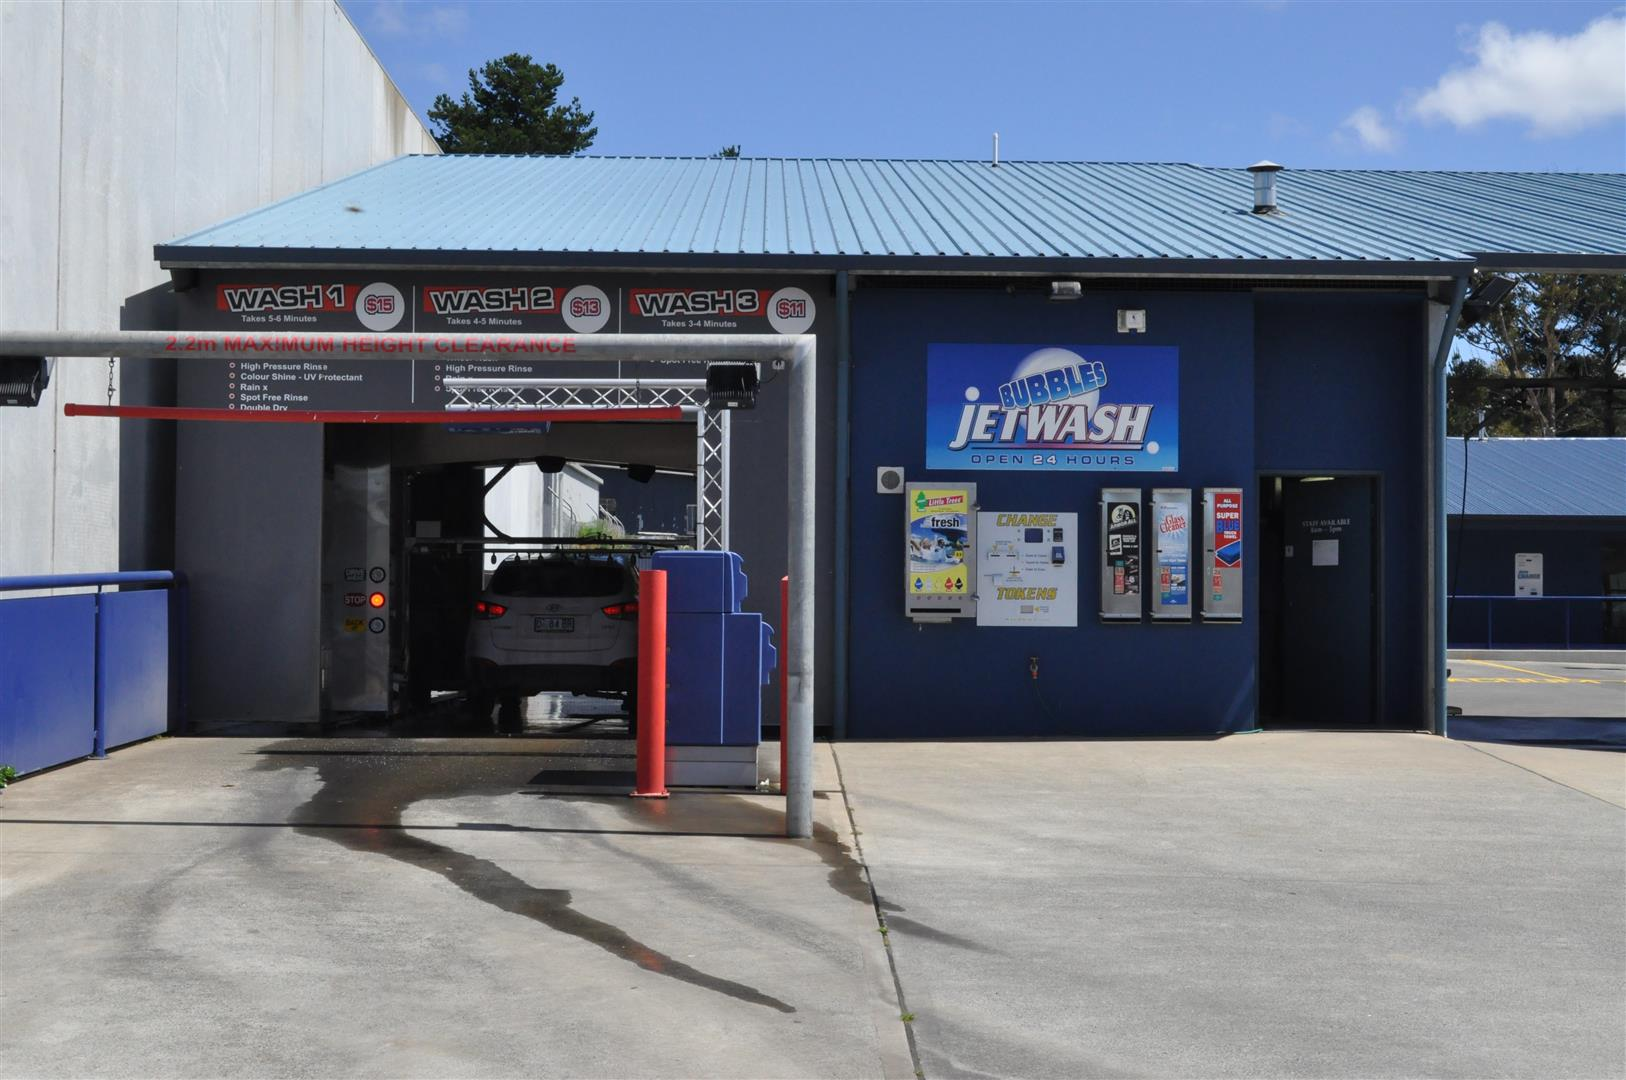 Bubbles jetwash kingston complete car wash and care facilities jetwash kingston self wash bays brushless car solutioingenieria Gallery